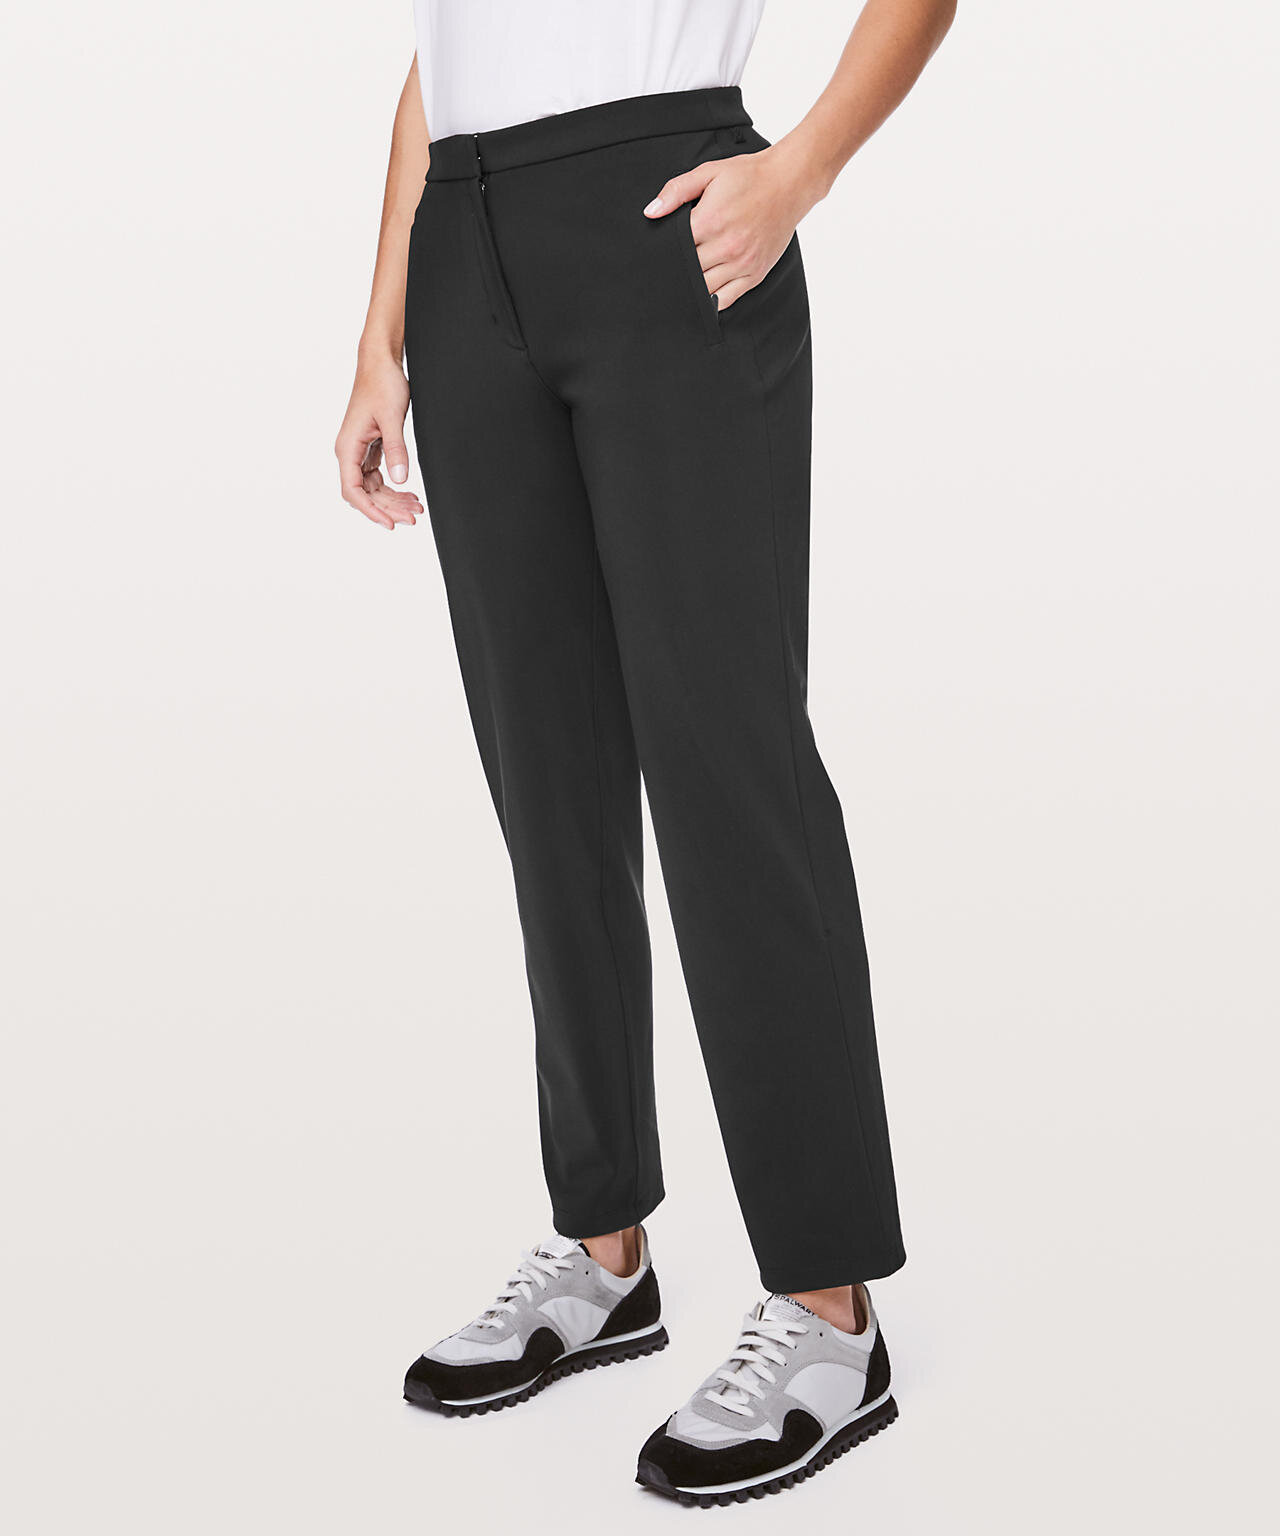 On The Move Pants